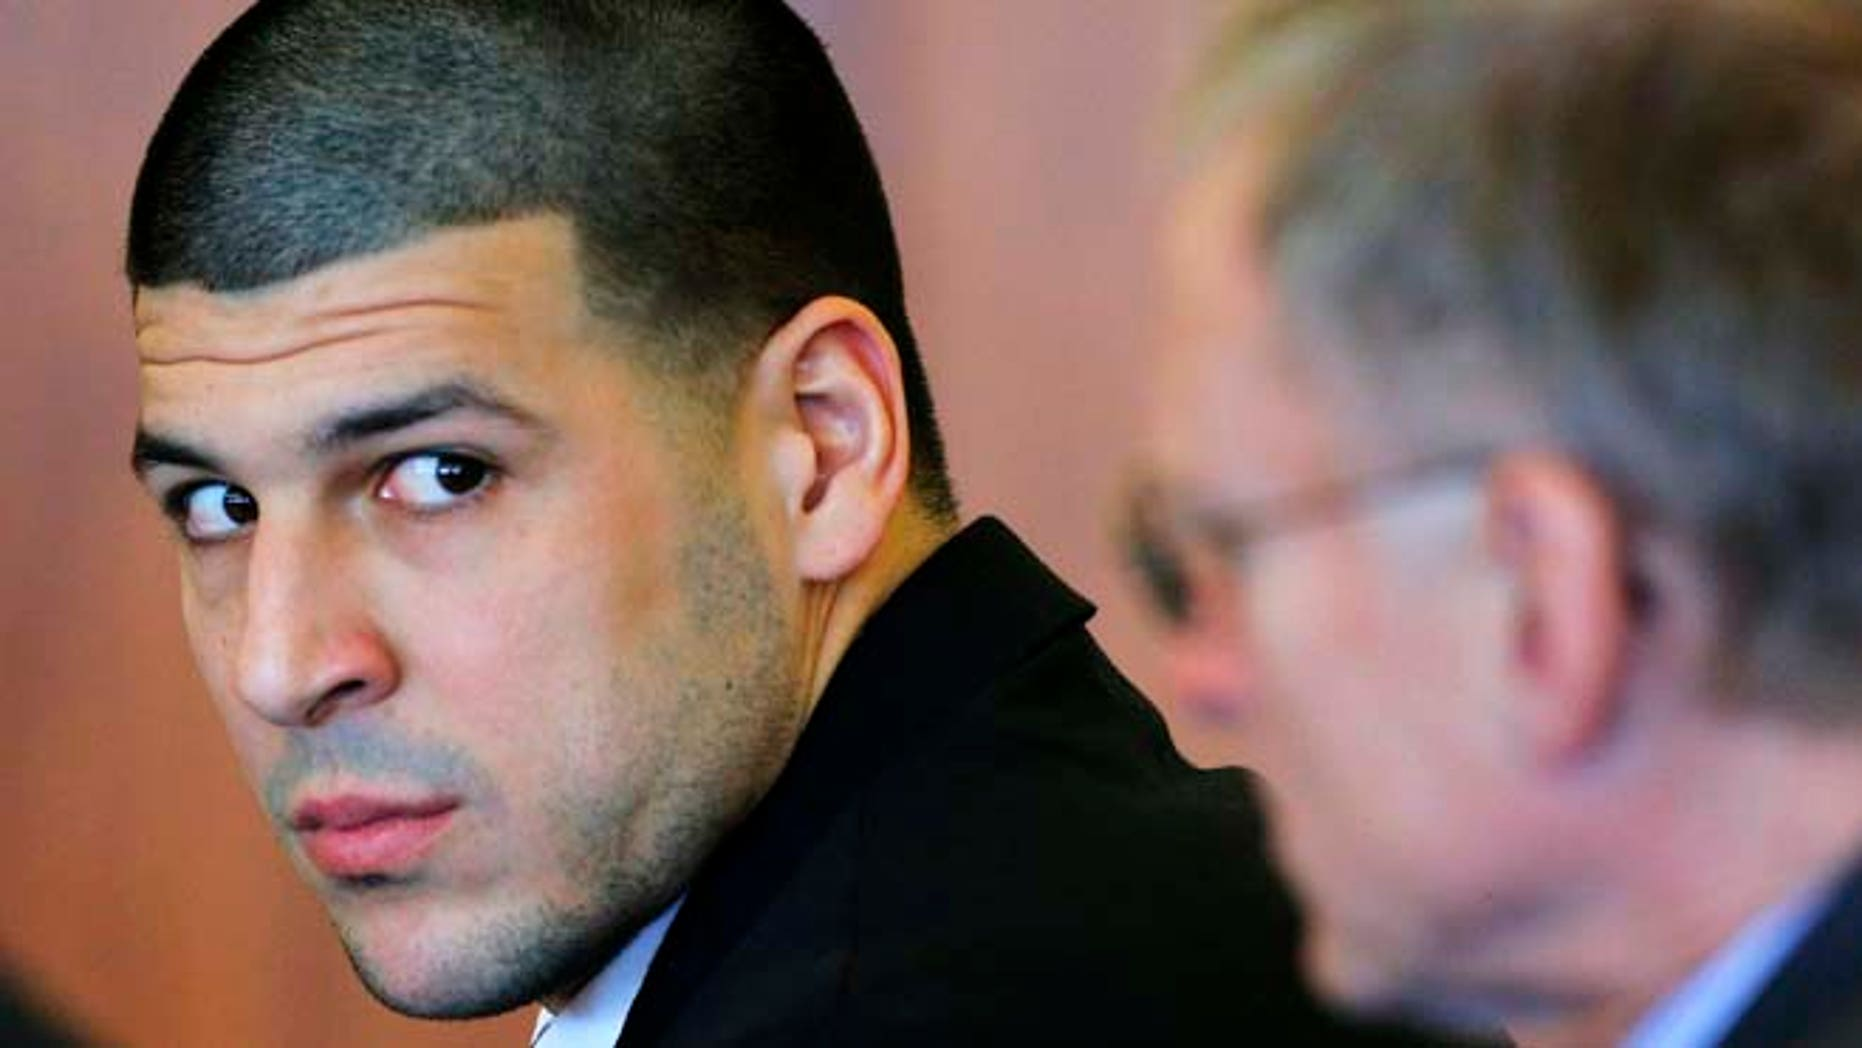 FILE 2014: Former New England Patriots tight end Aaron Hernandez, left, attends a pretrial hearing in Fall River, Mass.